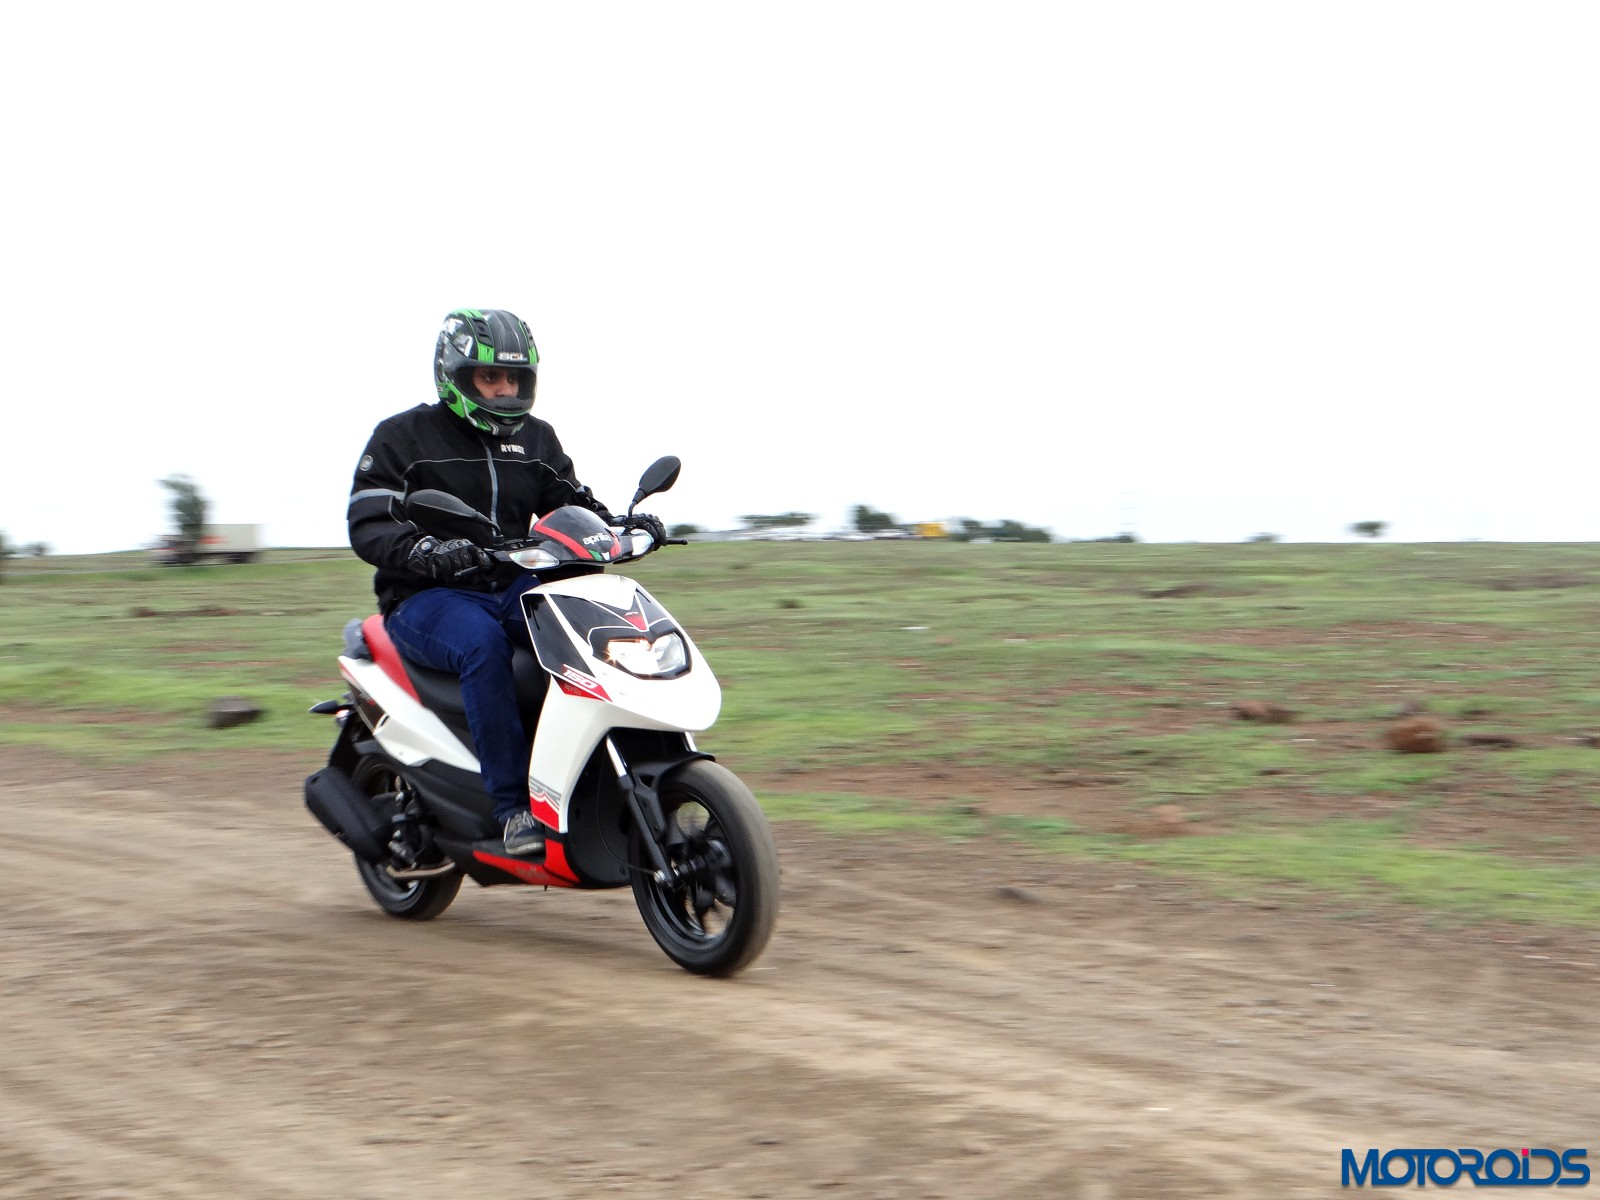 Aprilia SR 150 Review - Action Shots (2)